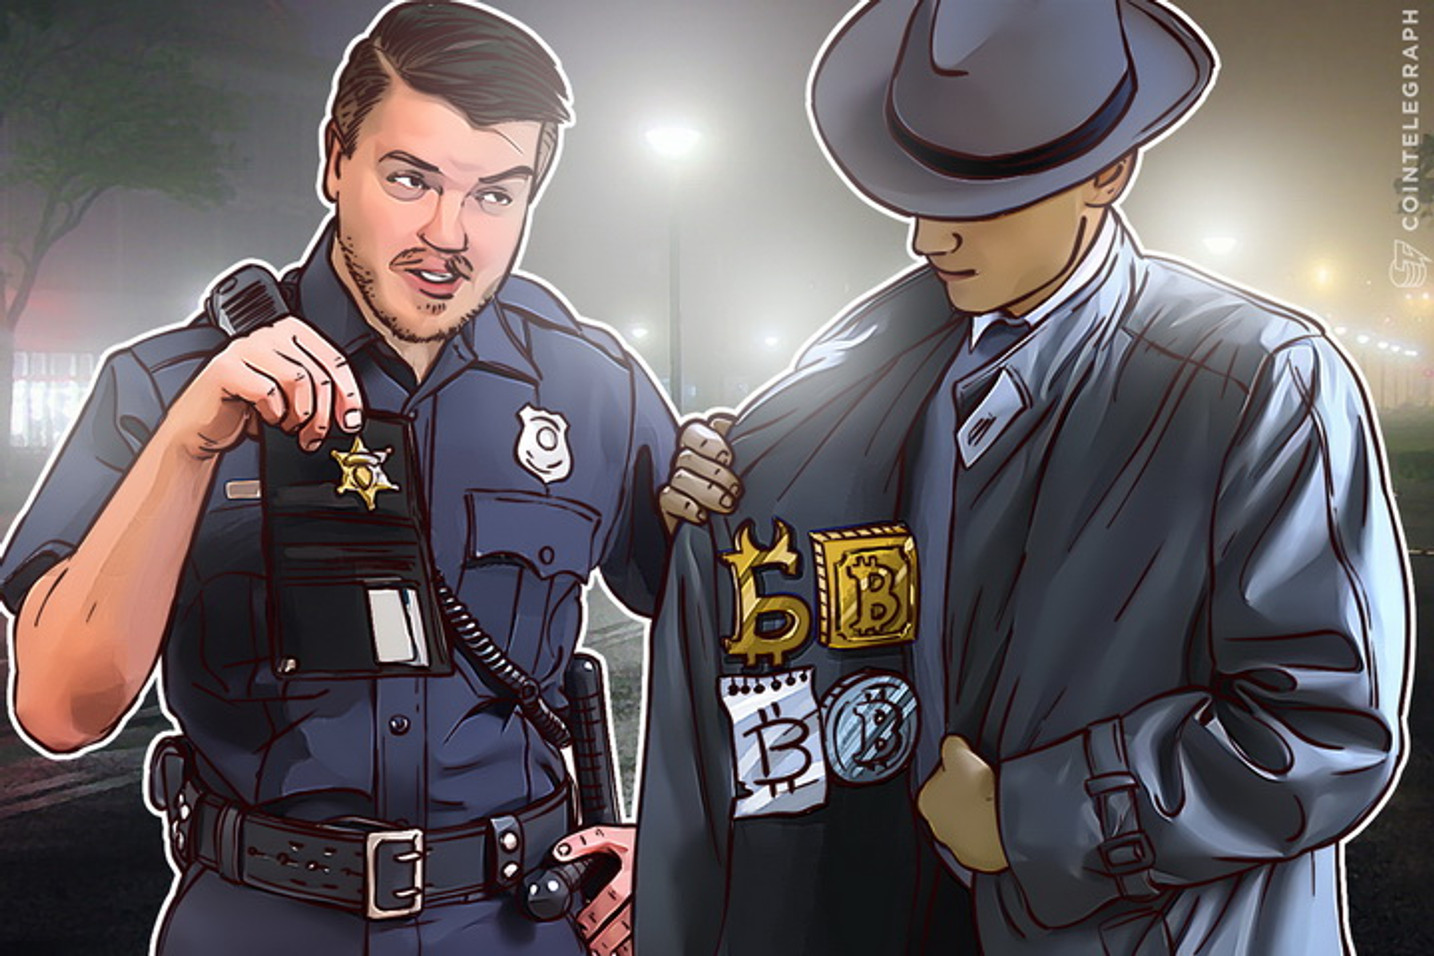 Blockchain Goes On A Brand Protection Mission, Fights Counterfeiting